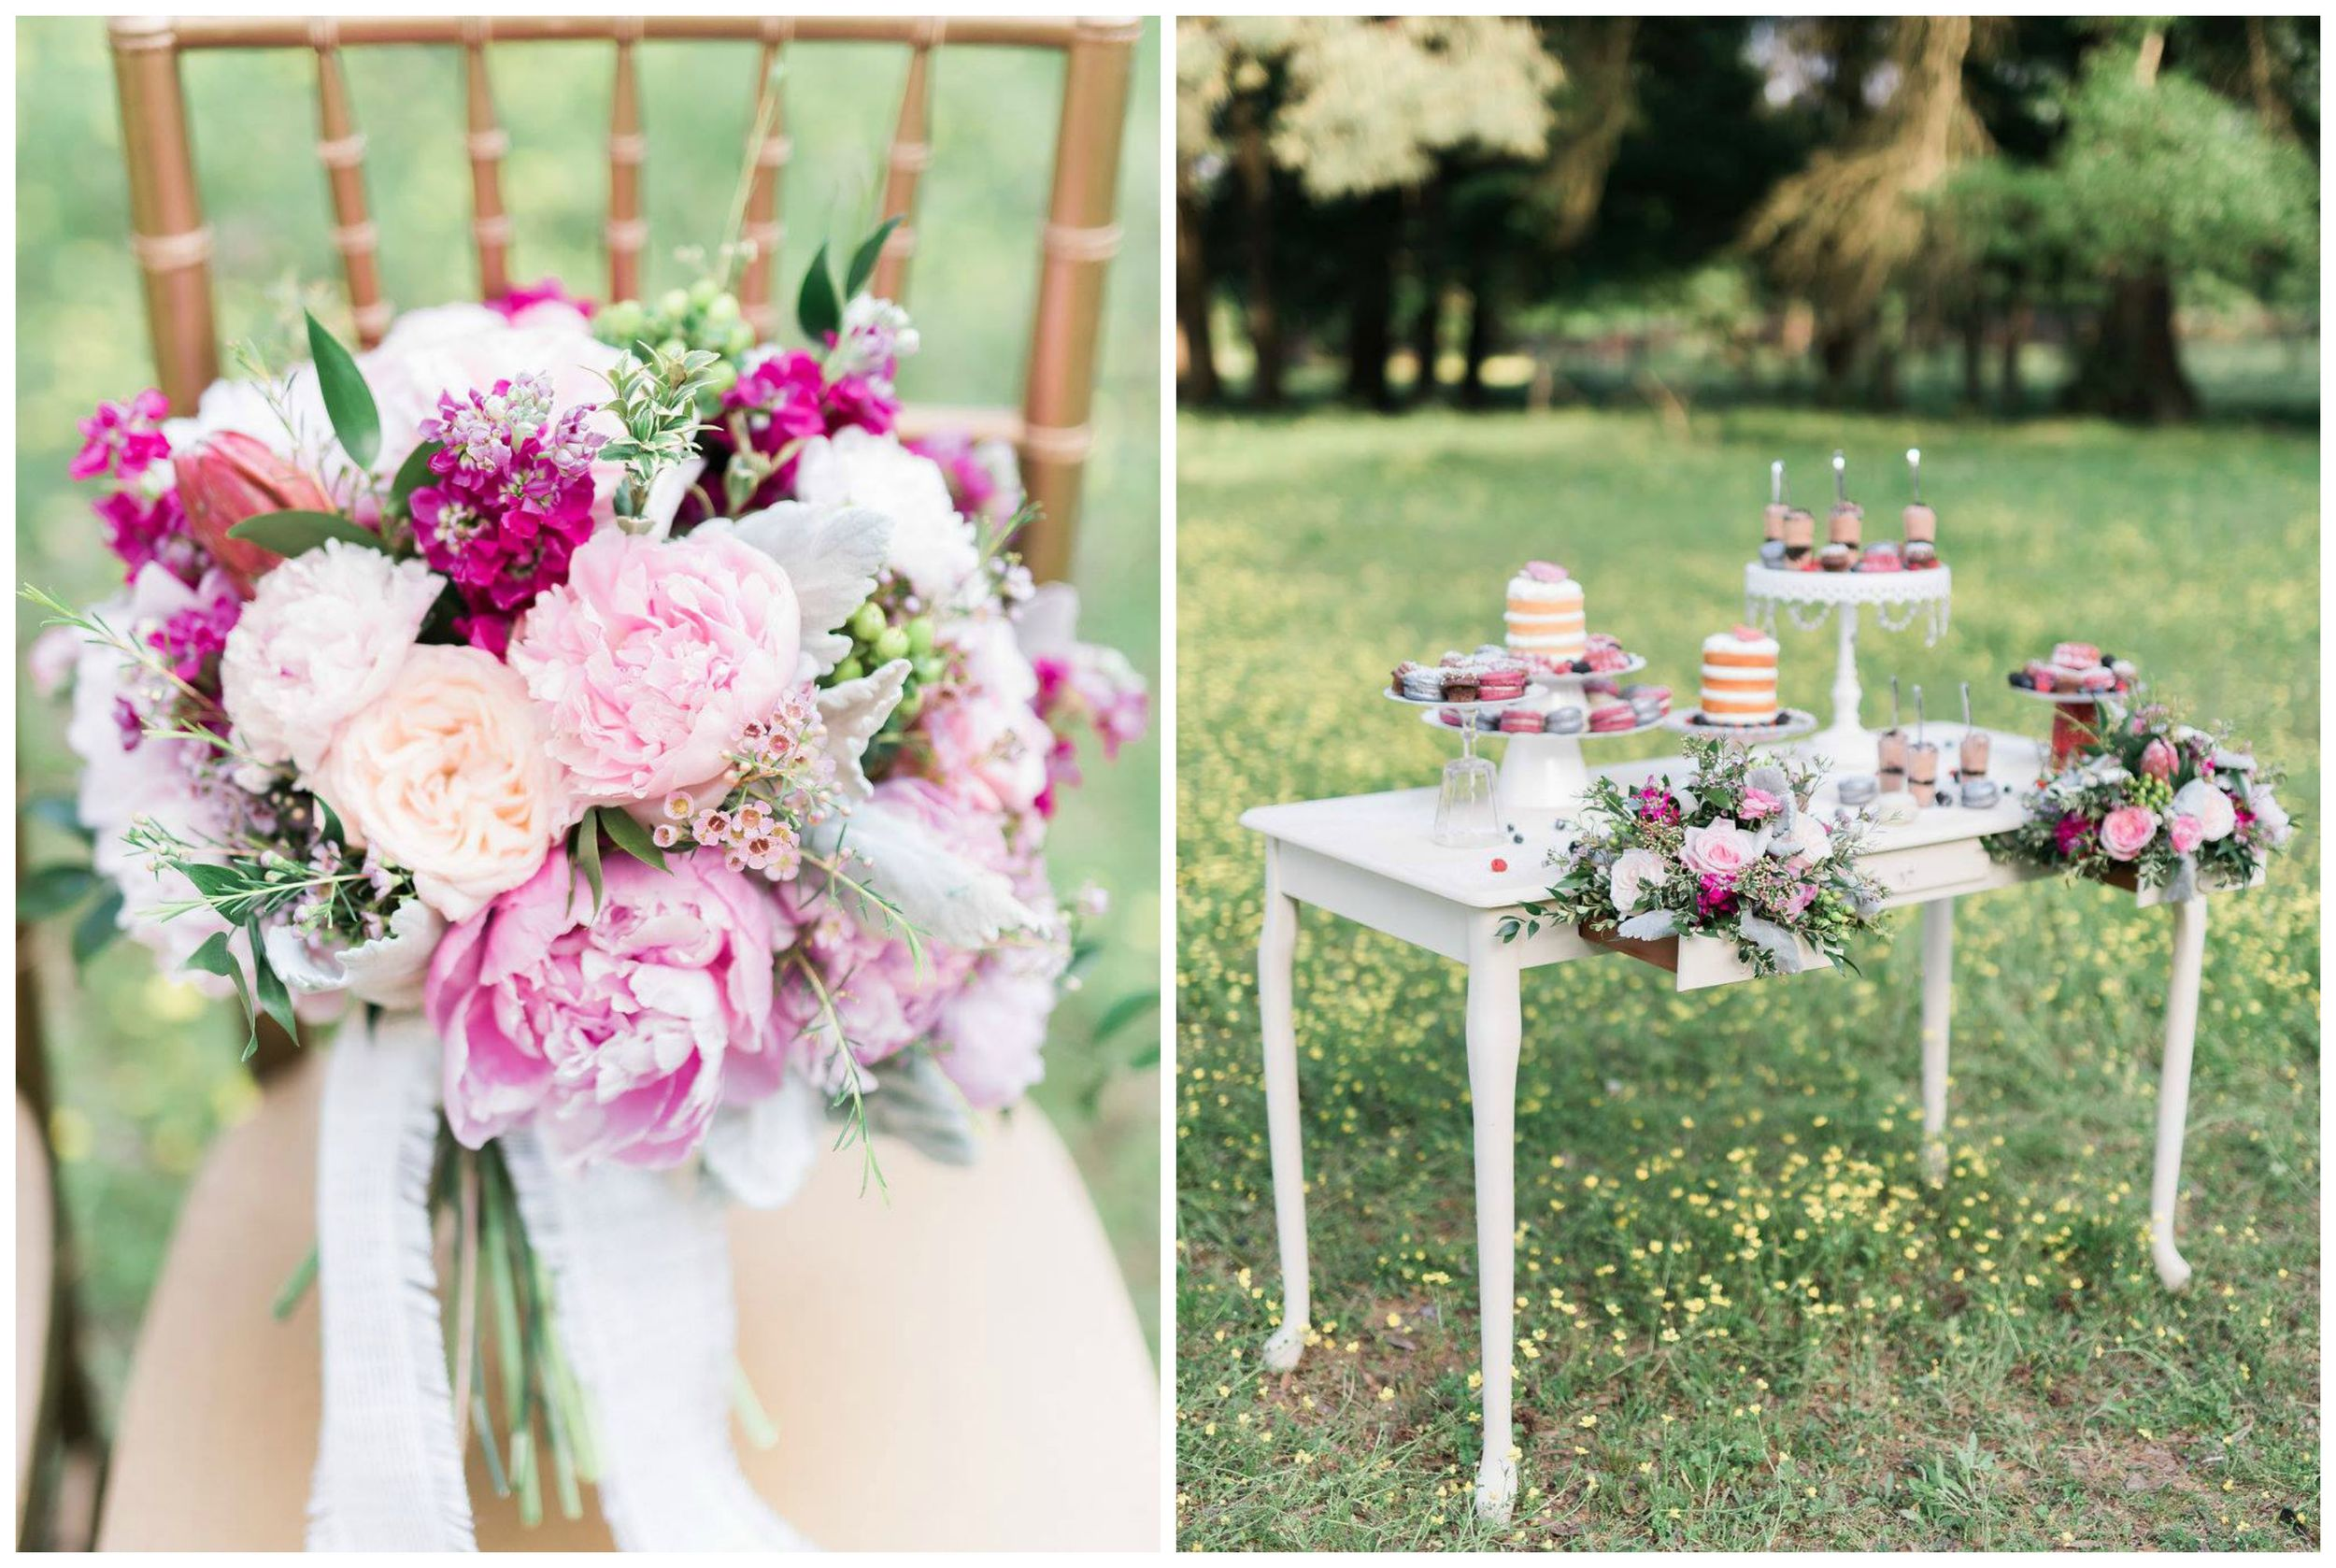 Stephanie Dawn Photography . Our  Magical Meadow  styled shoot is number one in my heart, probably forever. I adore  every  detail from this shoot, from the bouquet to the dessert table and the pretty cocktails to the stunning gowns.